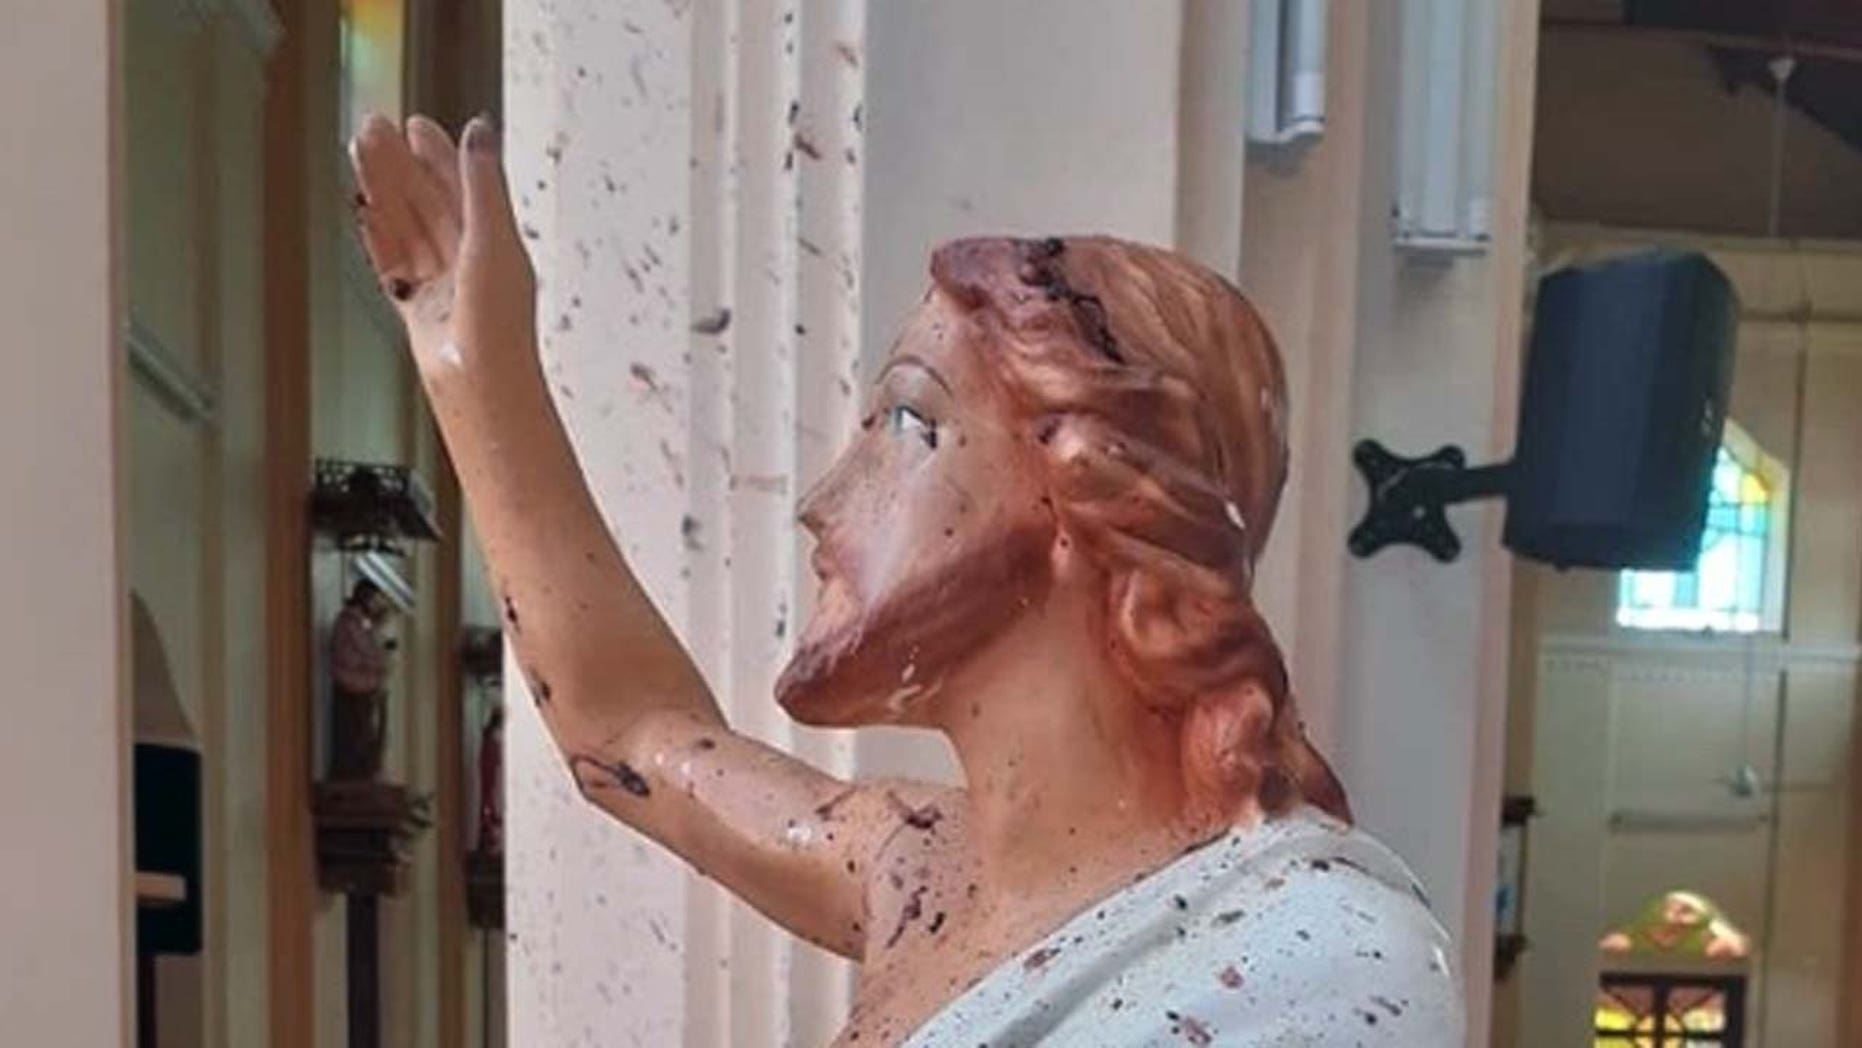 A blood-spattered statue of Jesus from the St. Sebastian church in Sri Lanka, after Islamic militants bombed the church in an Easter Sunday massacre.